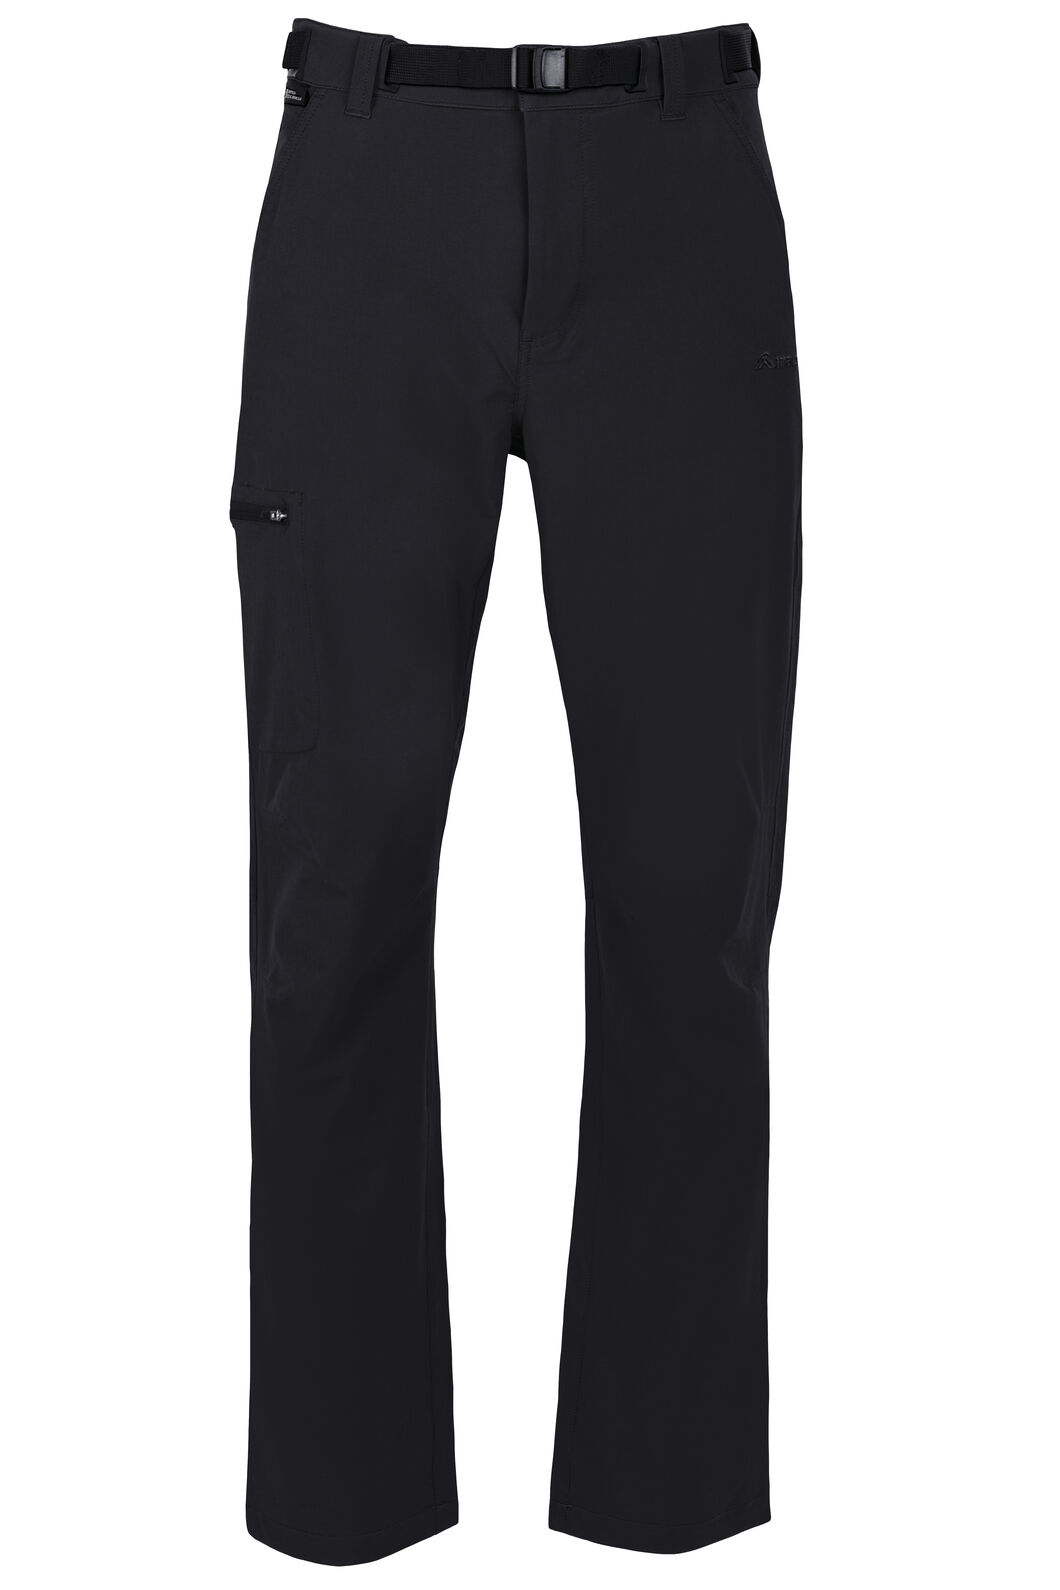 Macpac Trekker Pertex® Equilibrium Softshell Pants — Men's, Black, hi-res